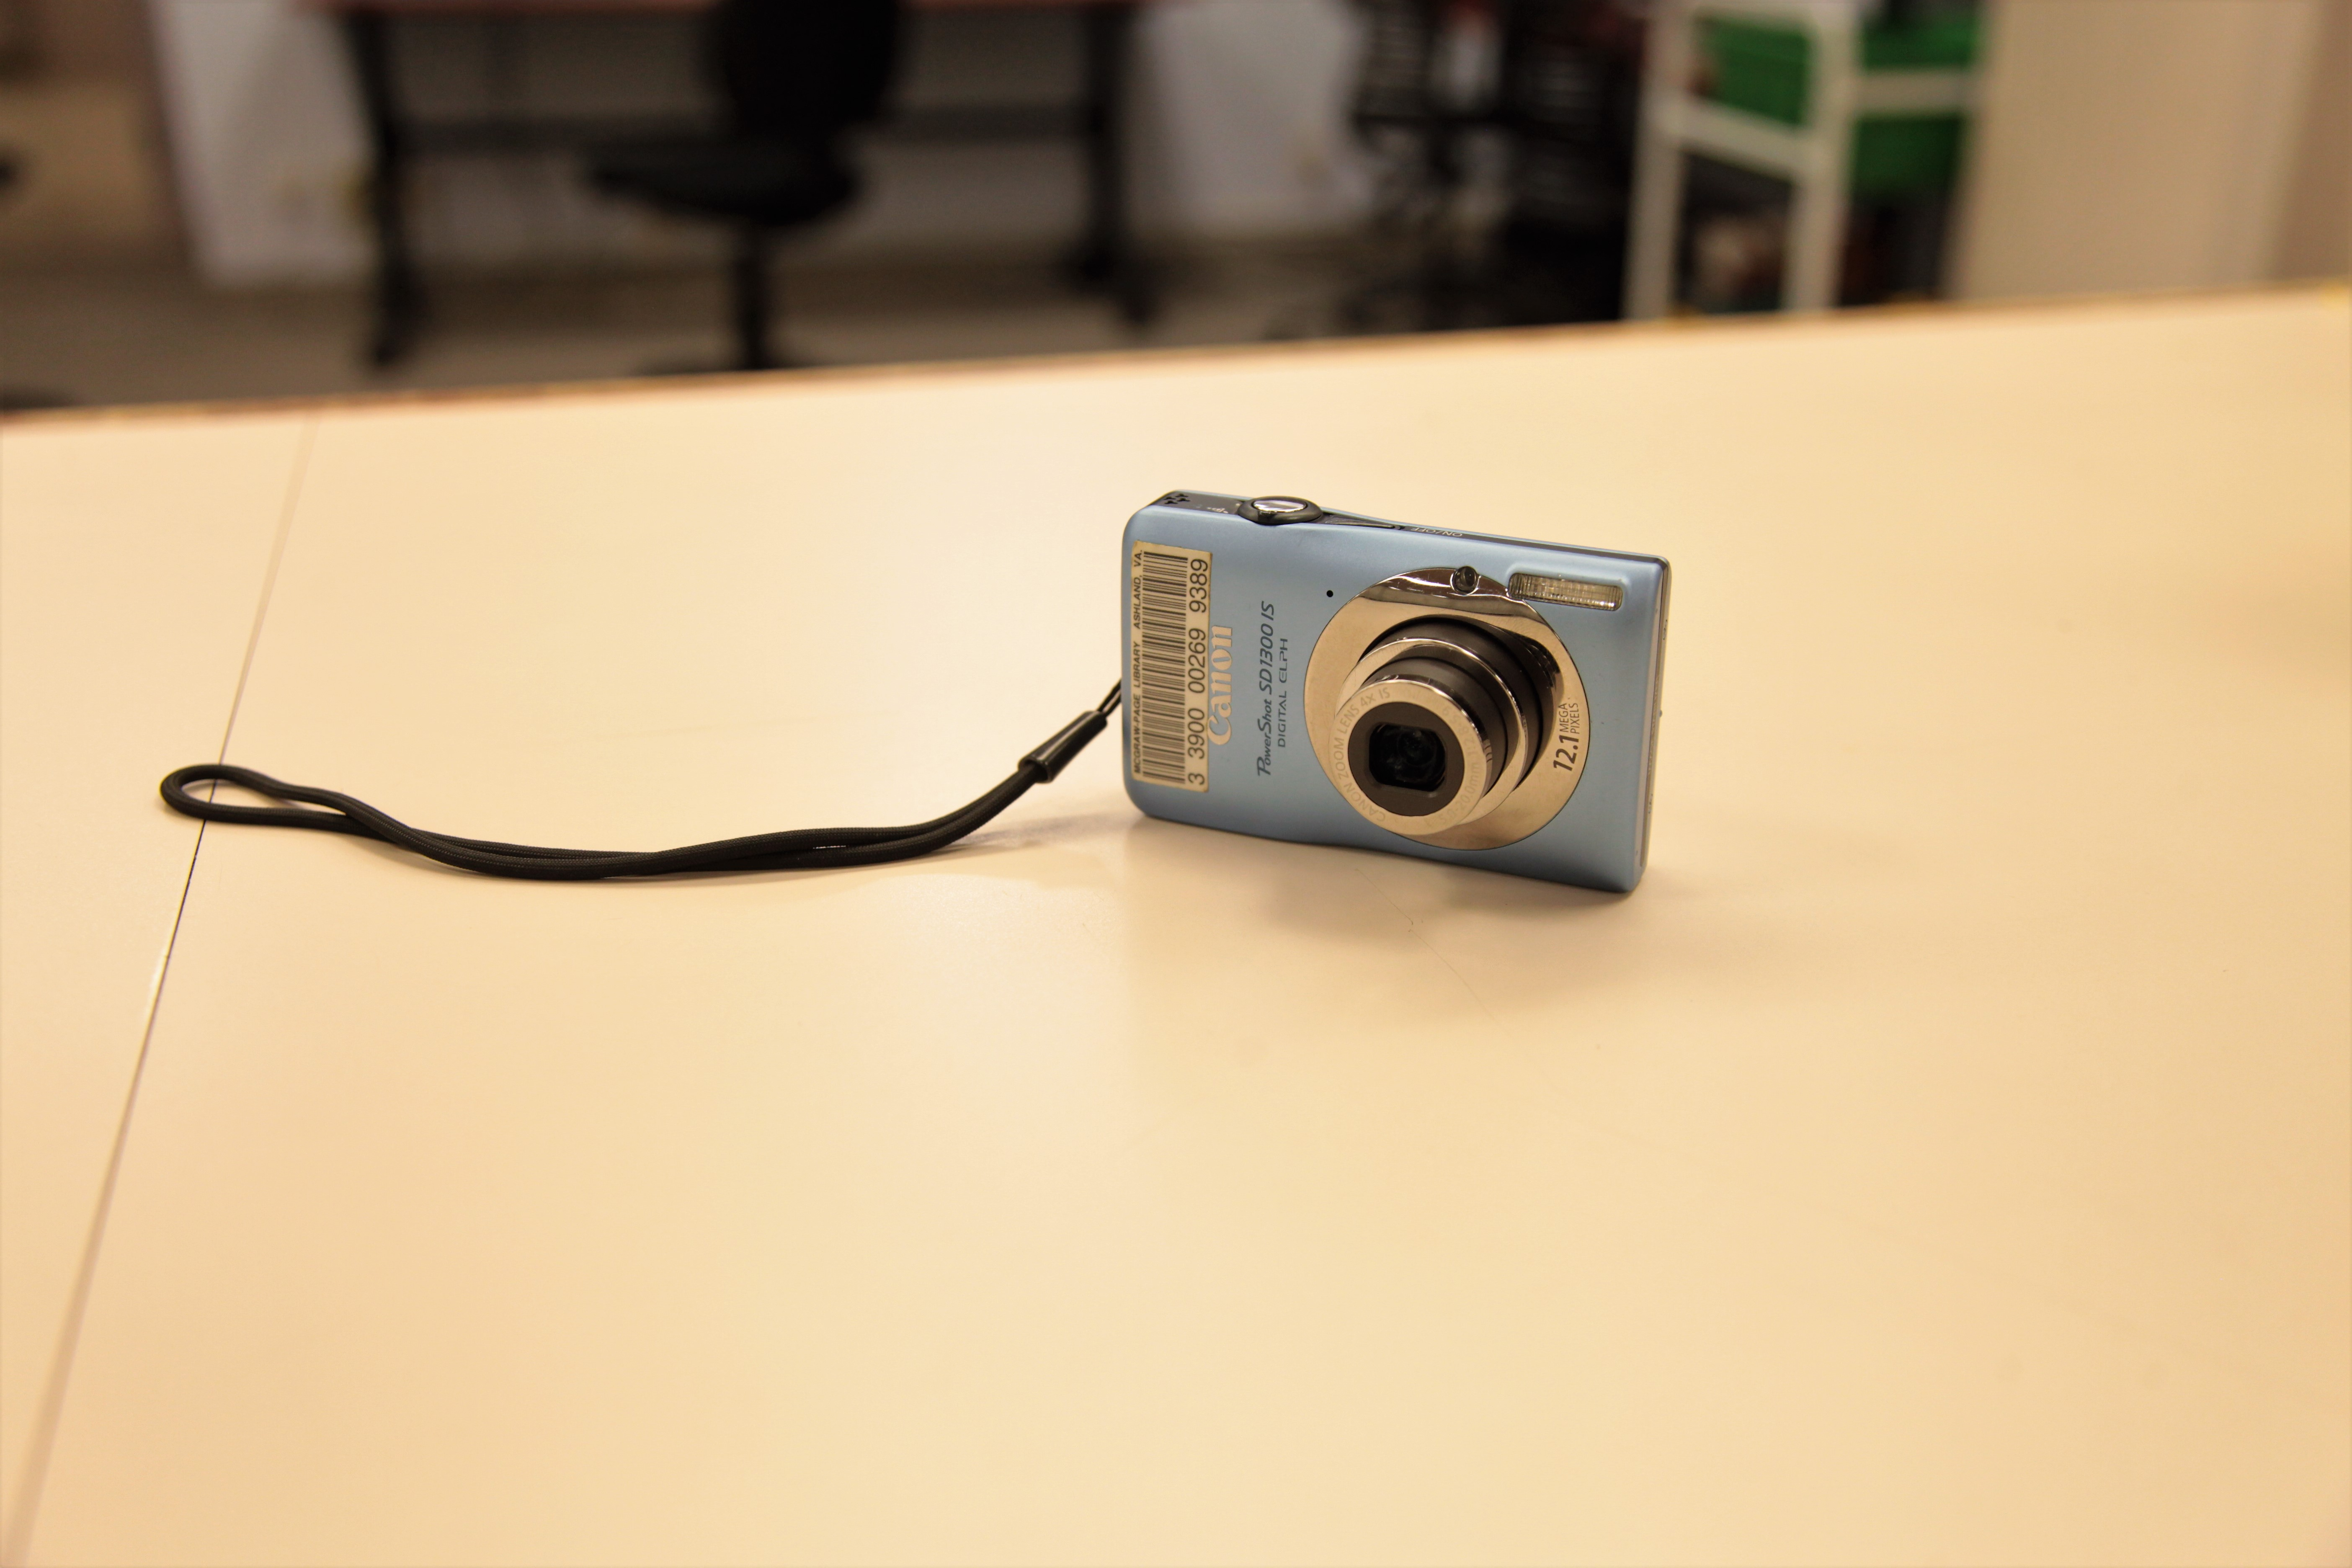 A digital camera on a counter